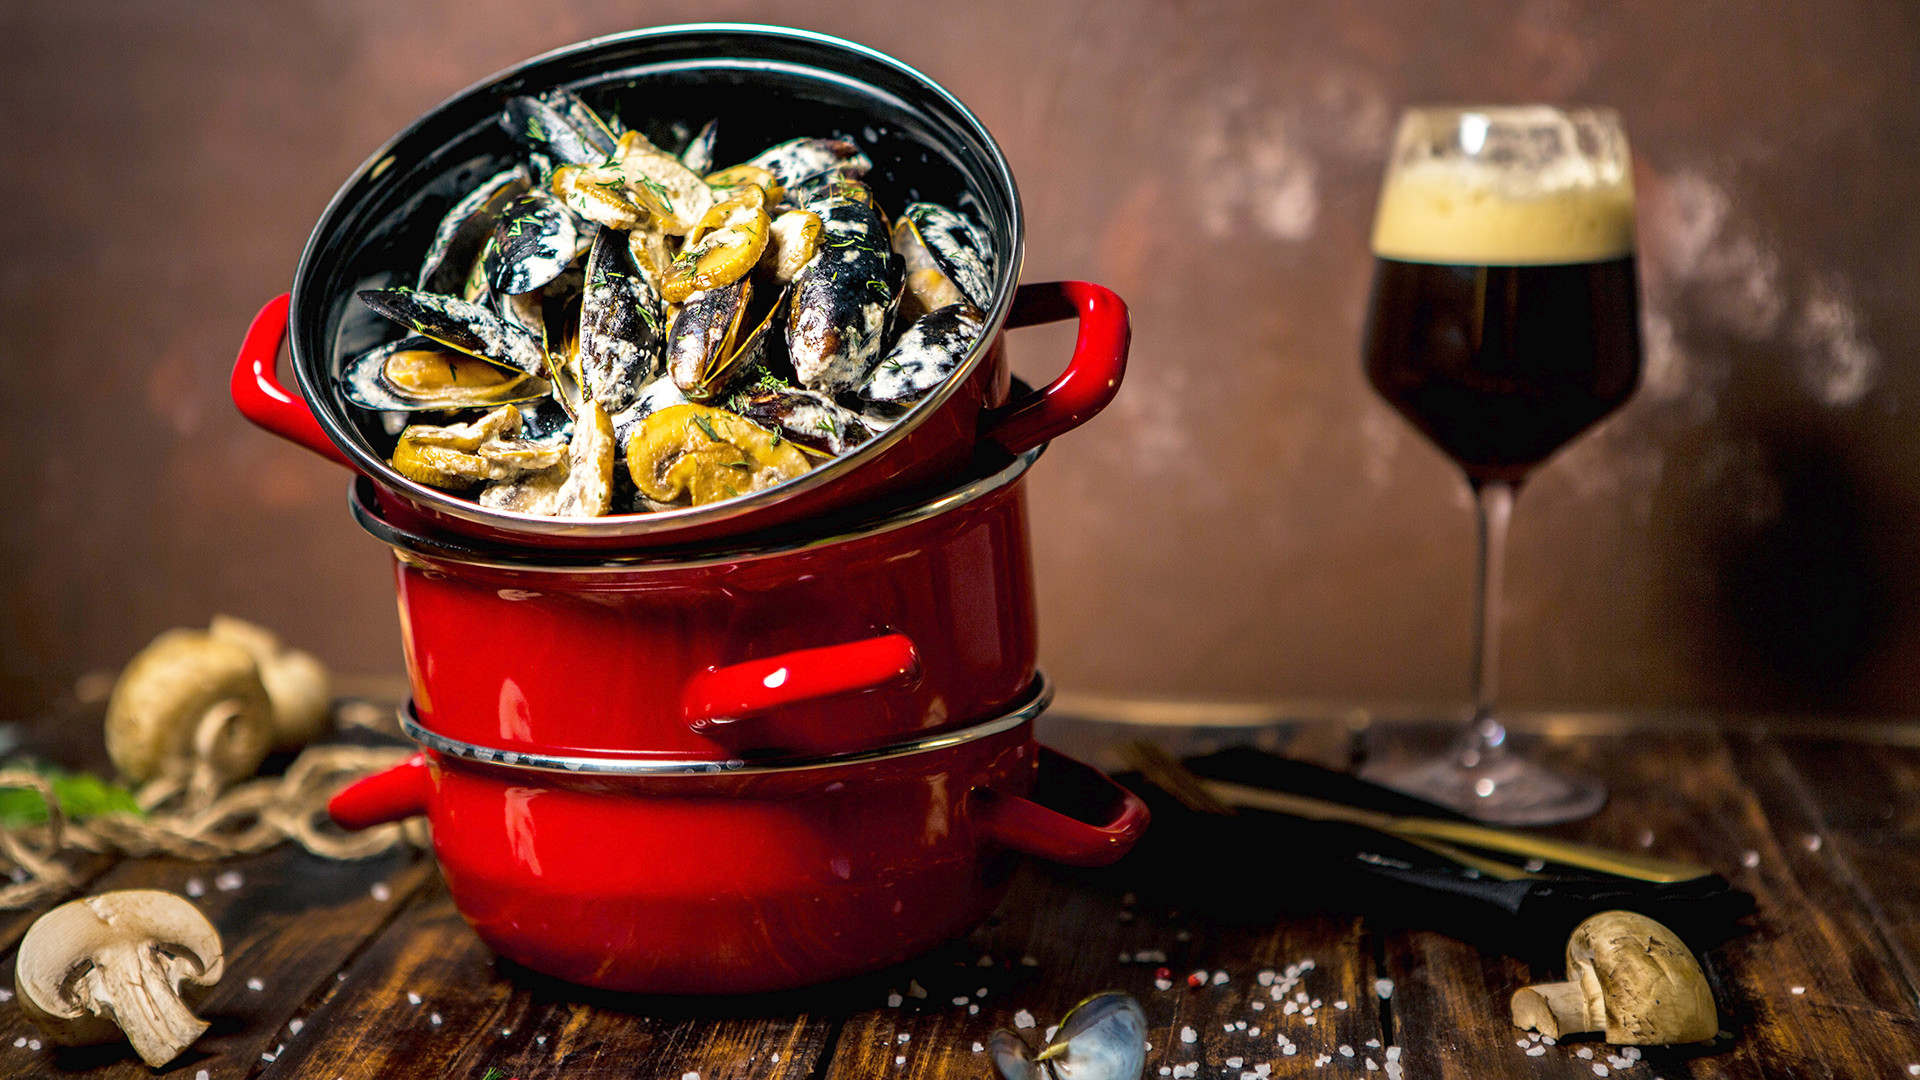 You'll find mussels in 33 different sauces in Mollusca